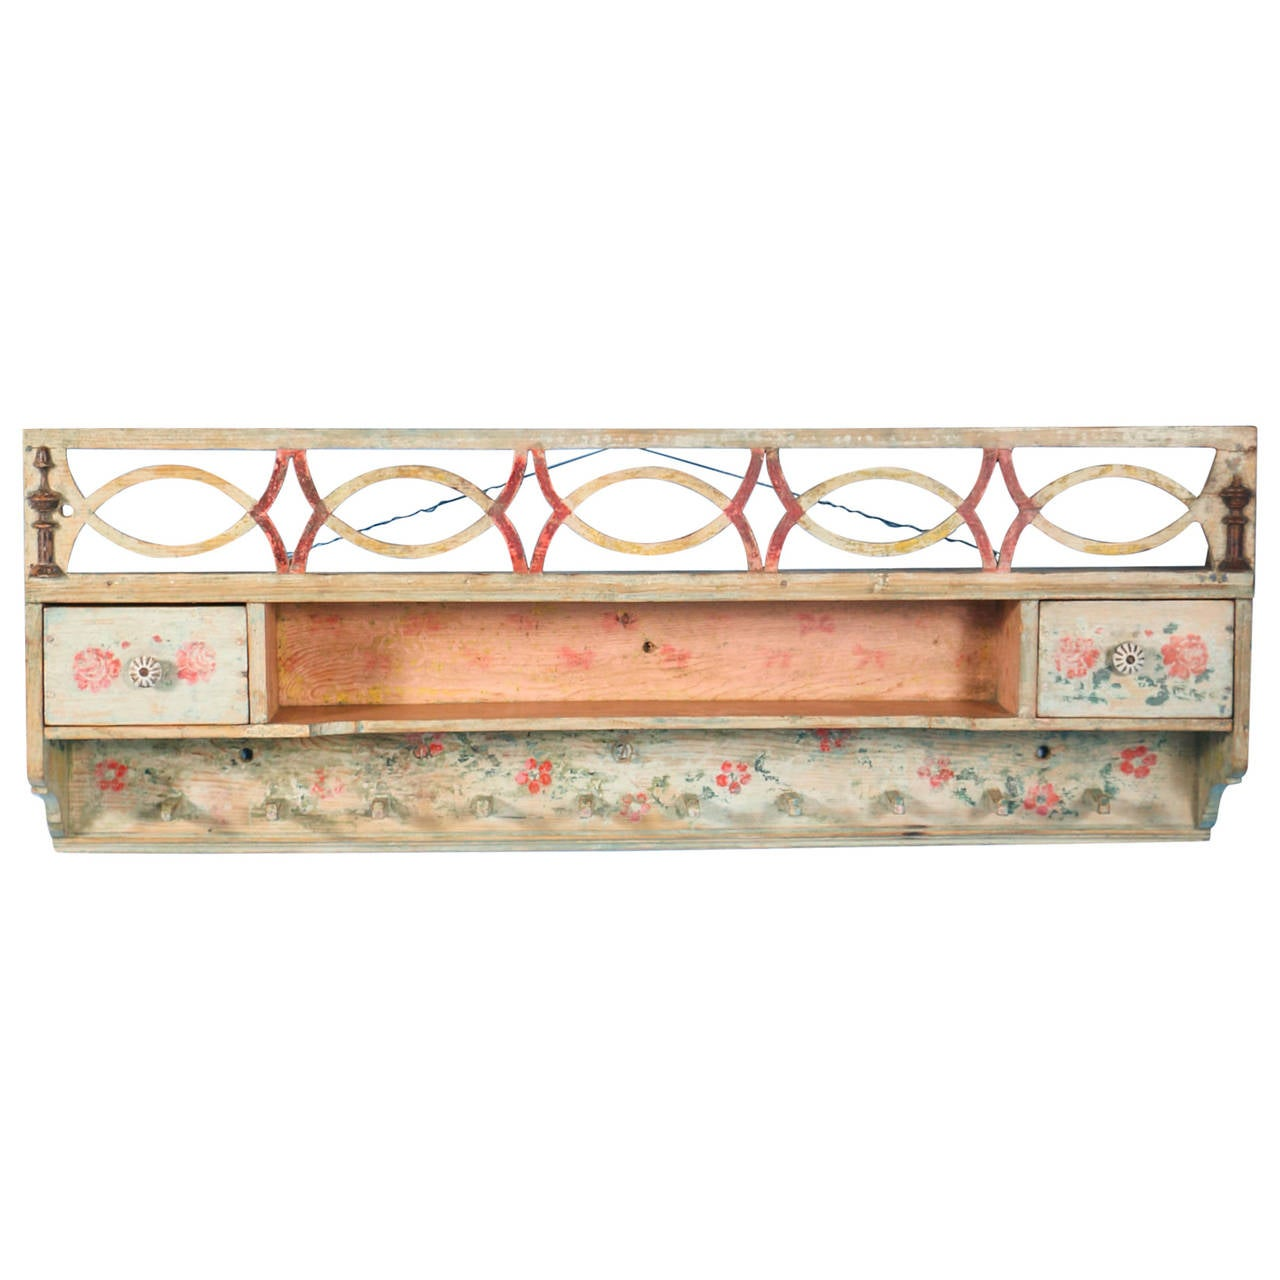 Antique Original Painted White Hanging Rack Shelf With